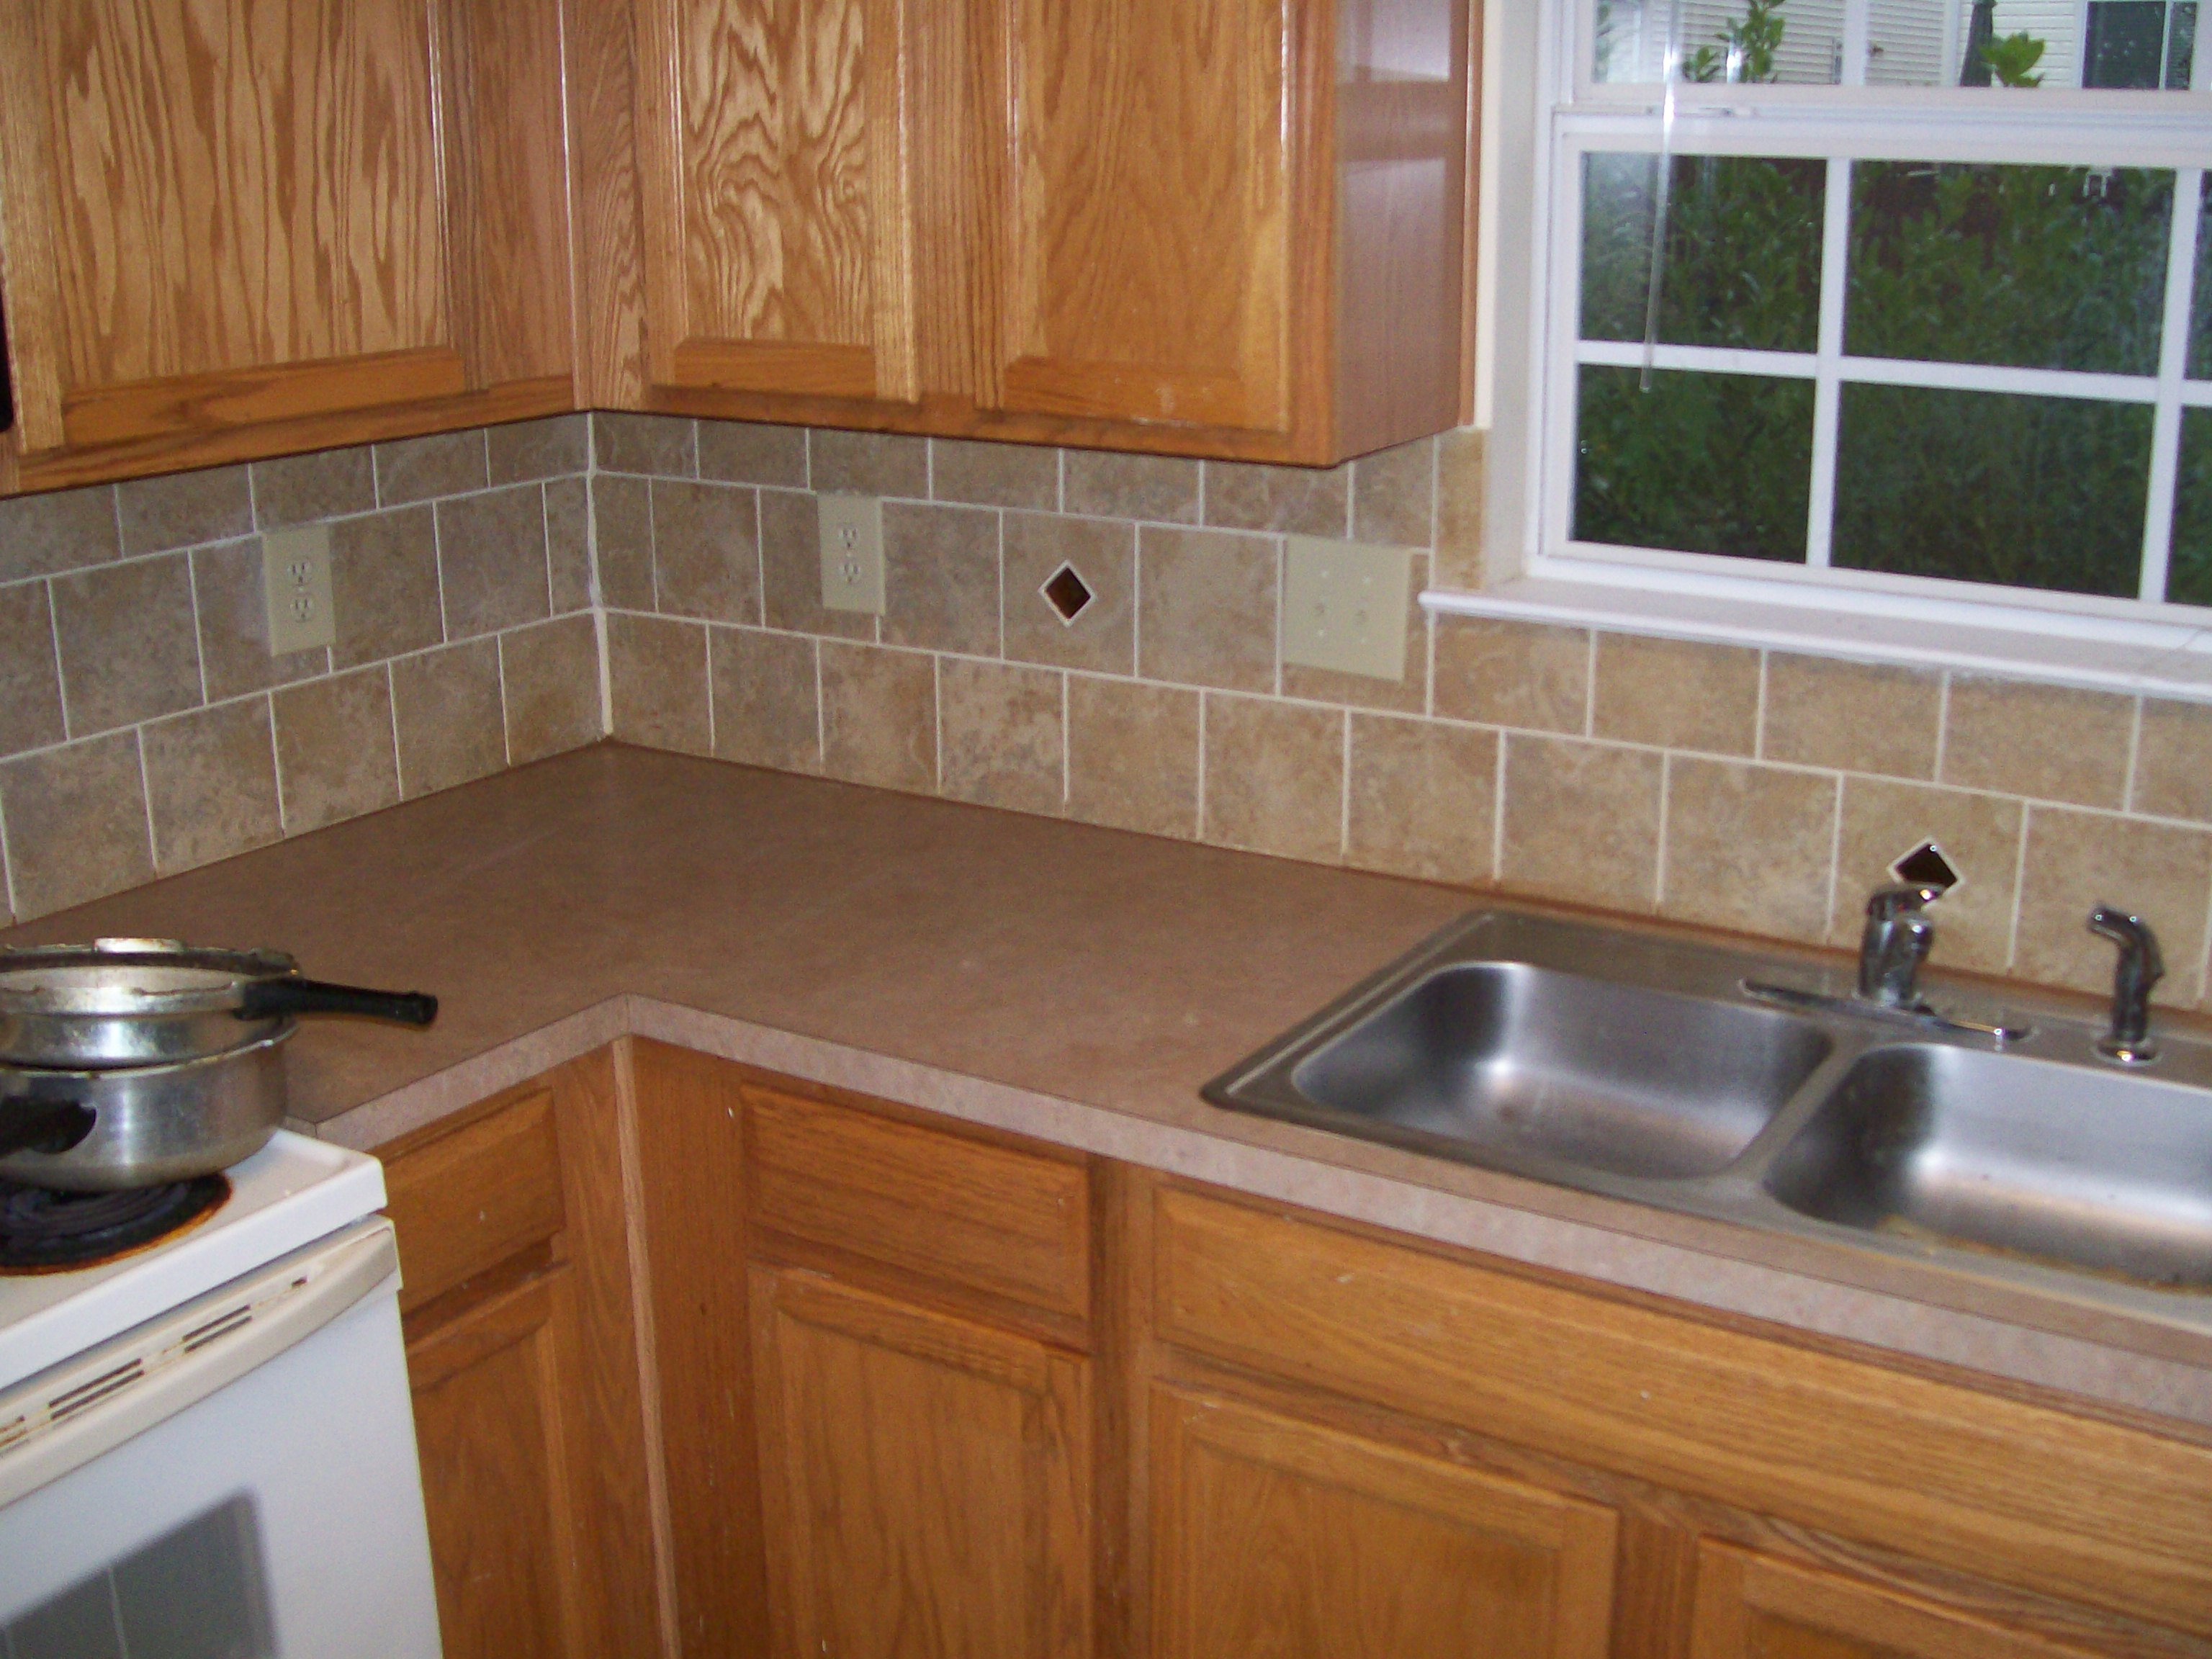 kitchen backsplash gallery decorating ideas backsplash ideas for kitchens inexpensive kitchen